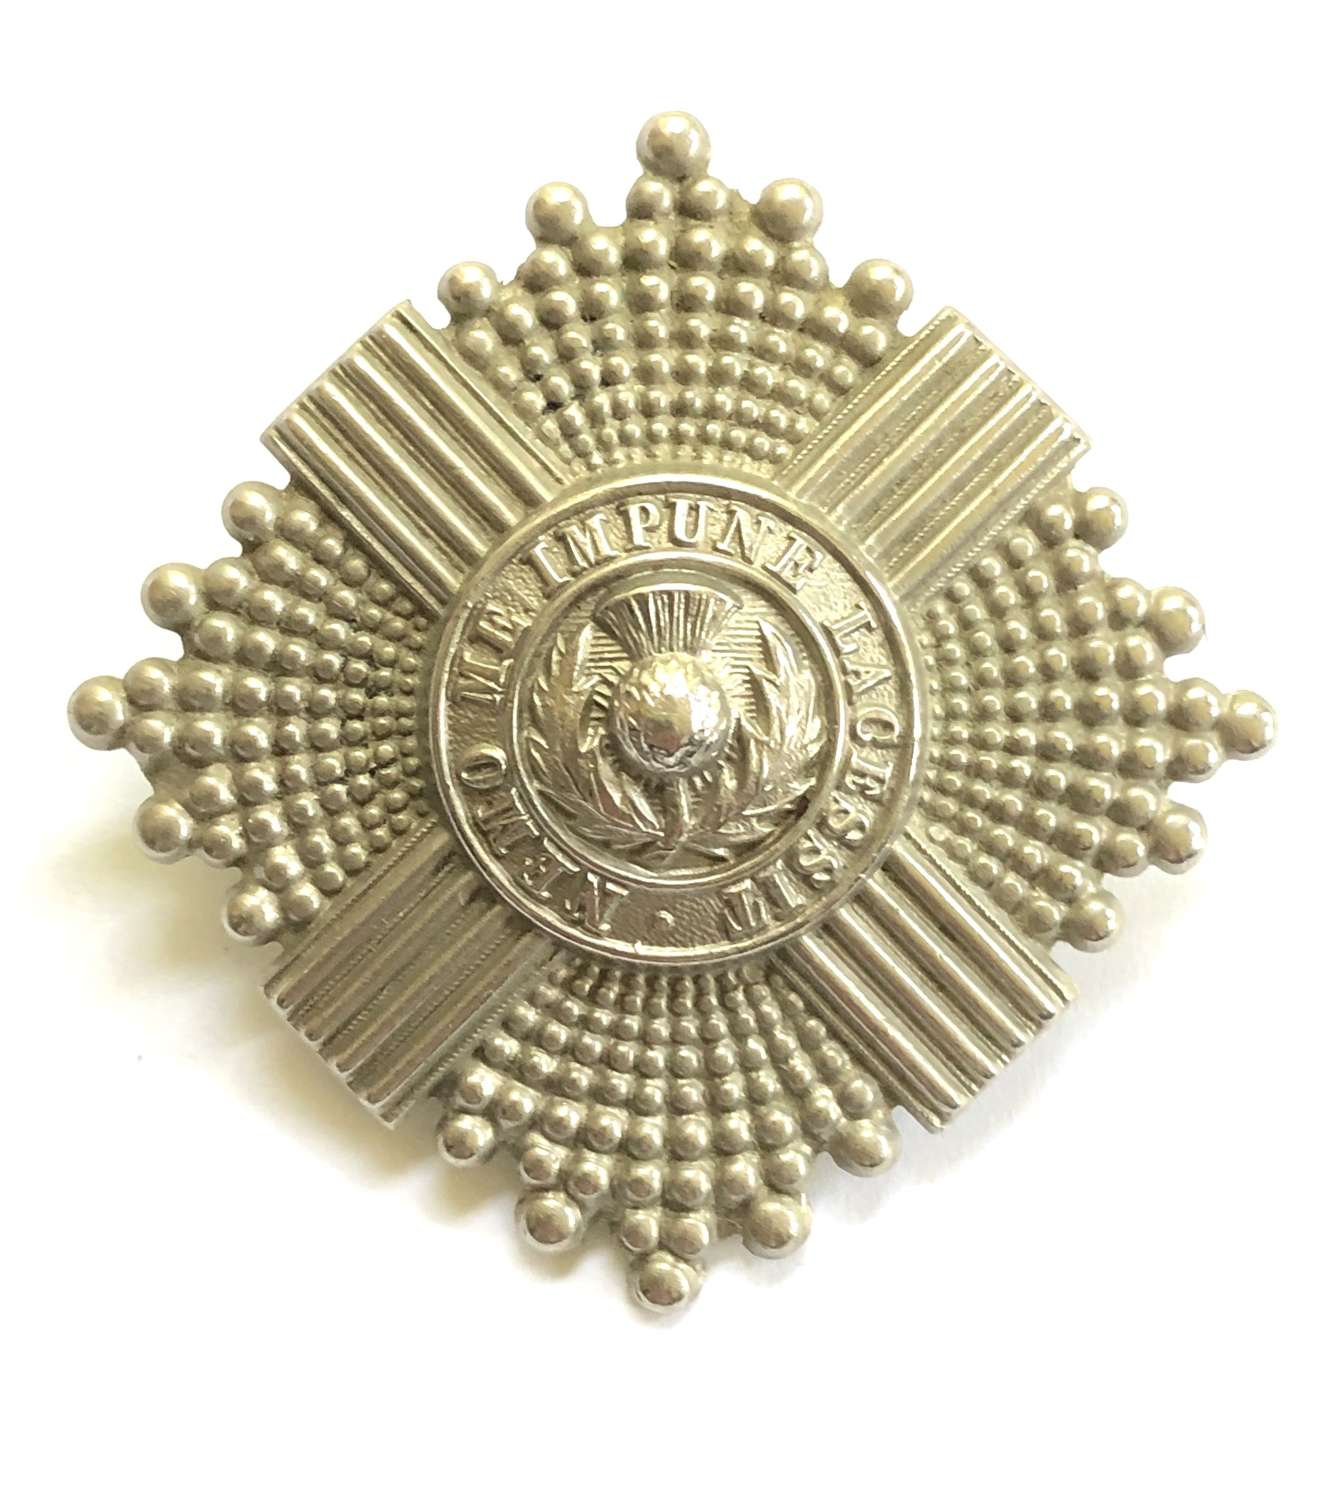 9th (Highlanders) VB Royal Scots OR's glengarry badge circa 1902-08